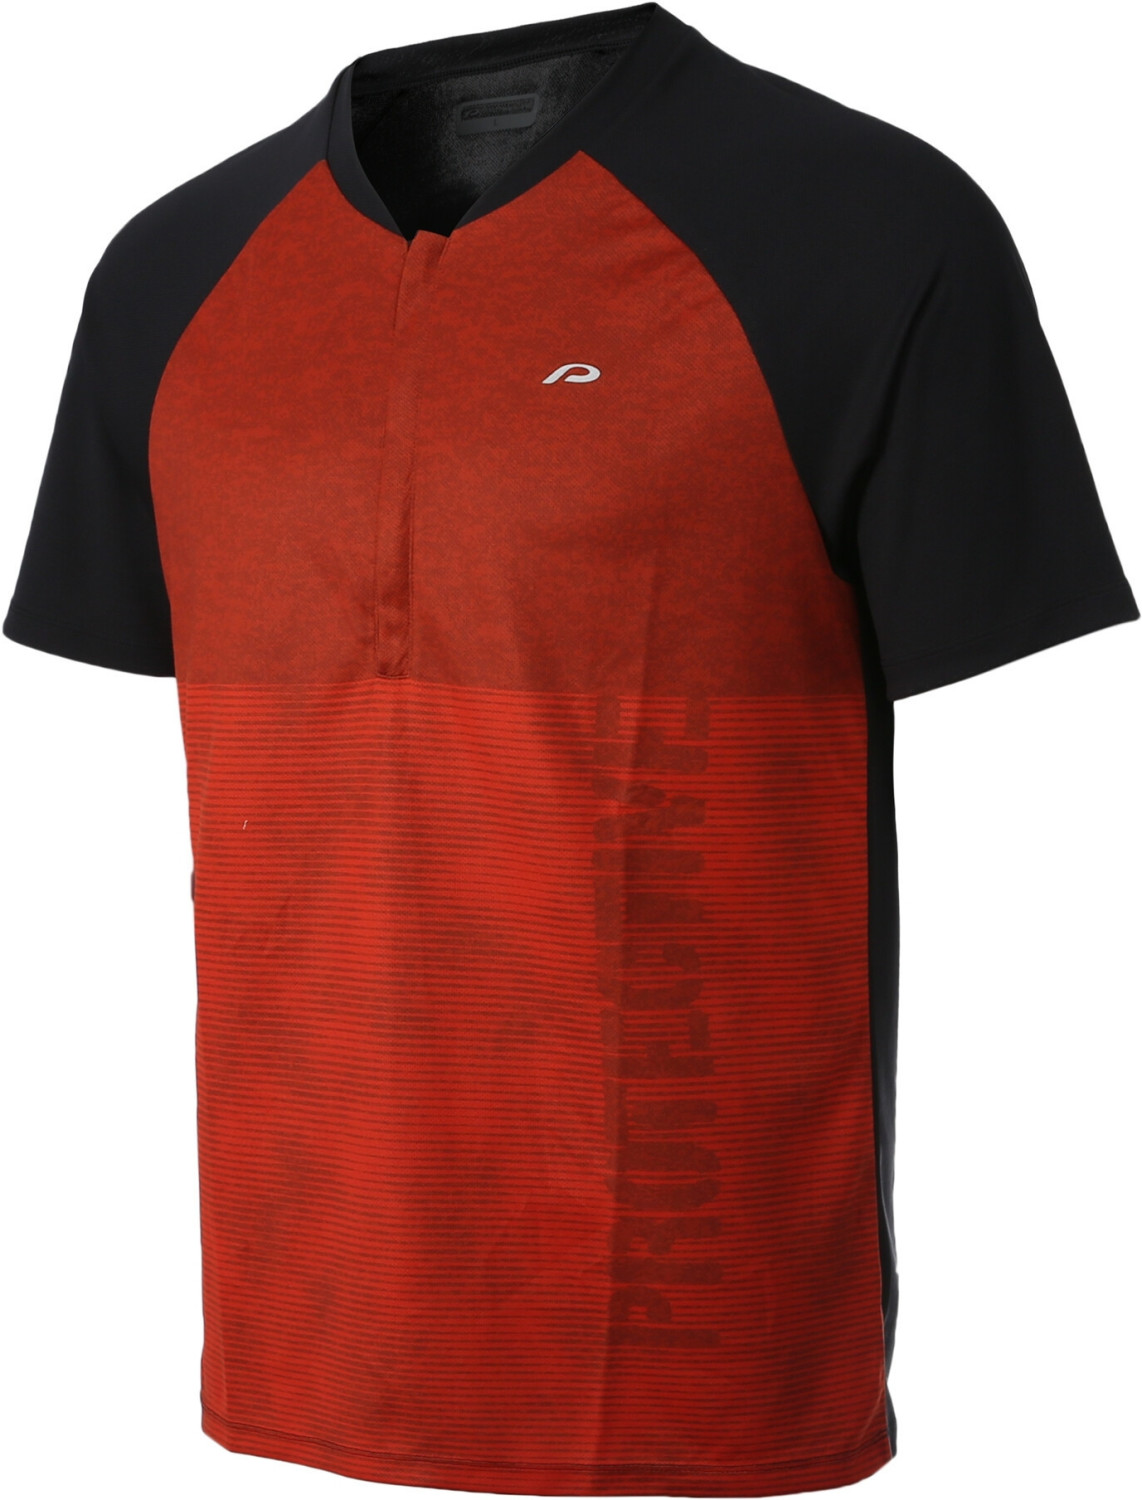 Protective P-Tag Trikot Men's dark rust